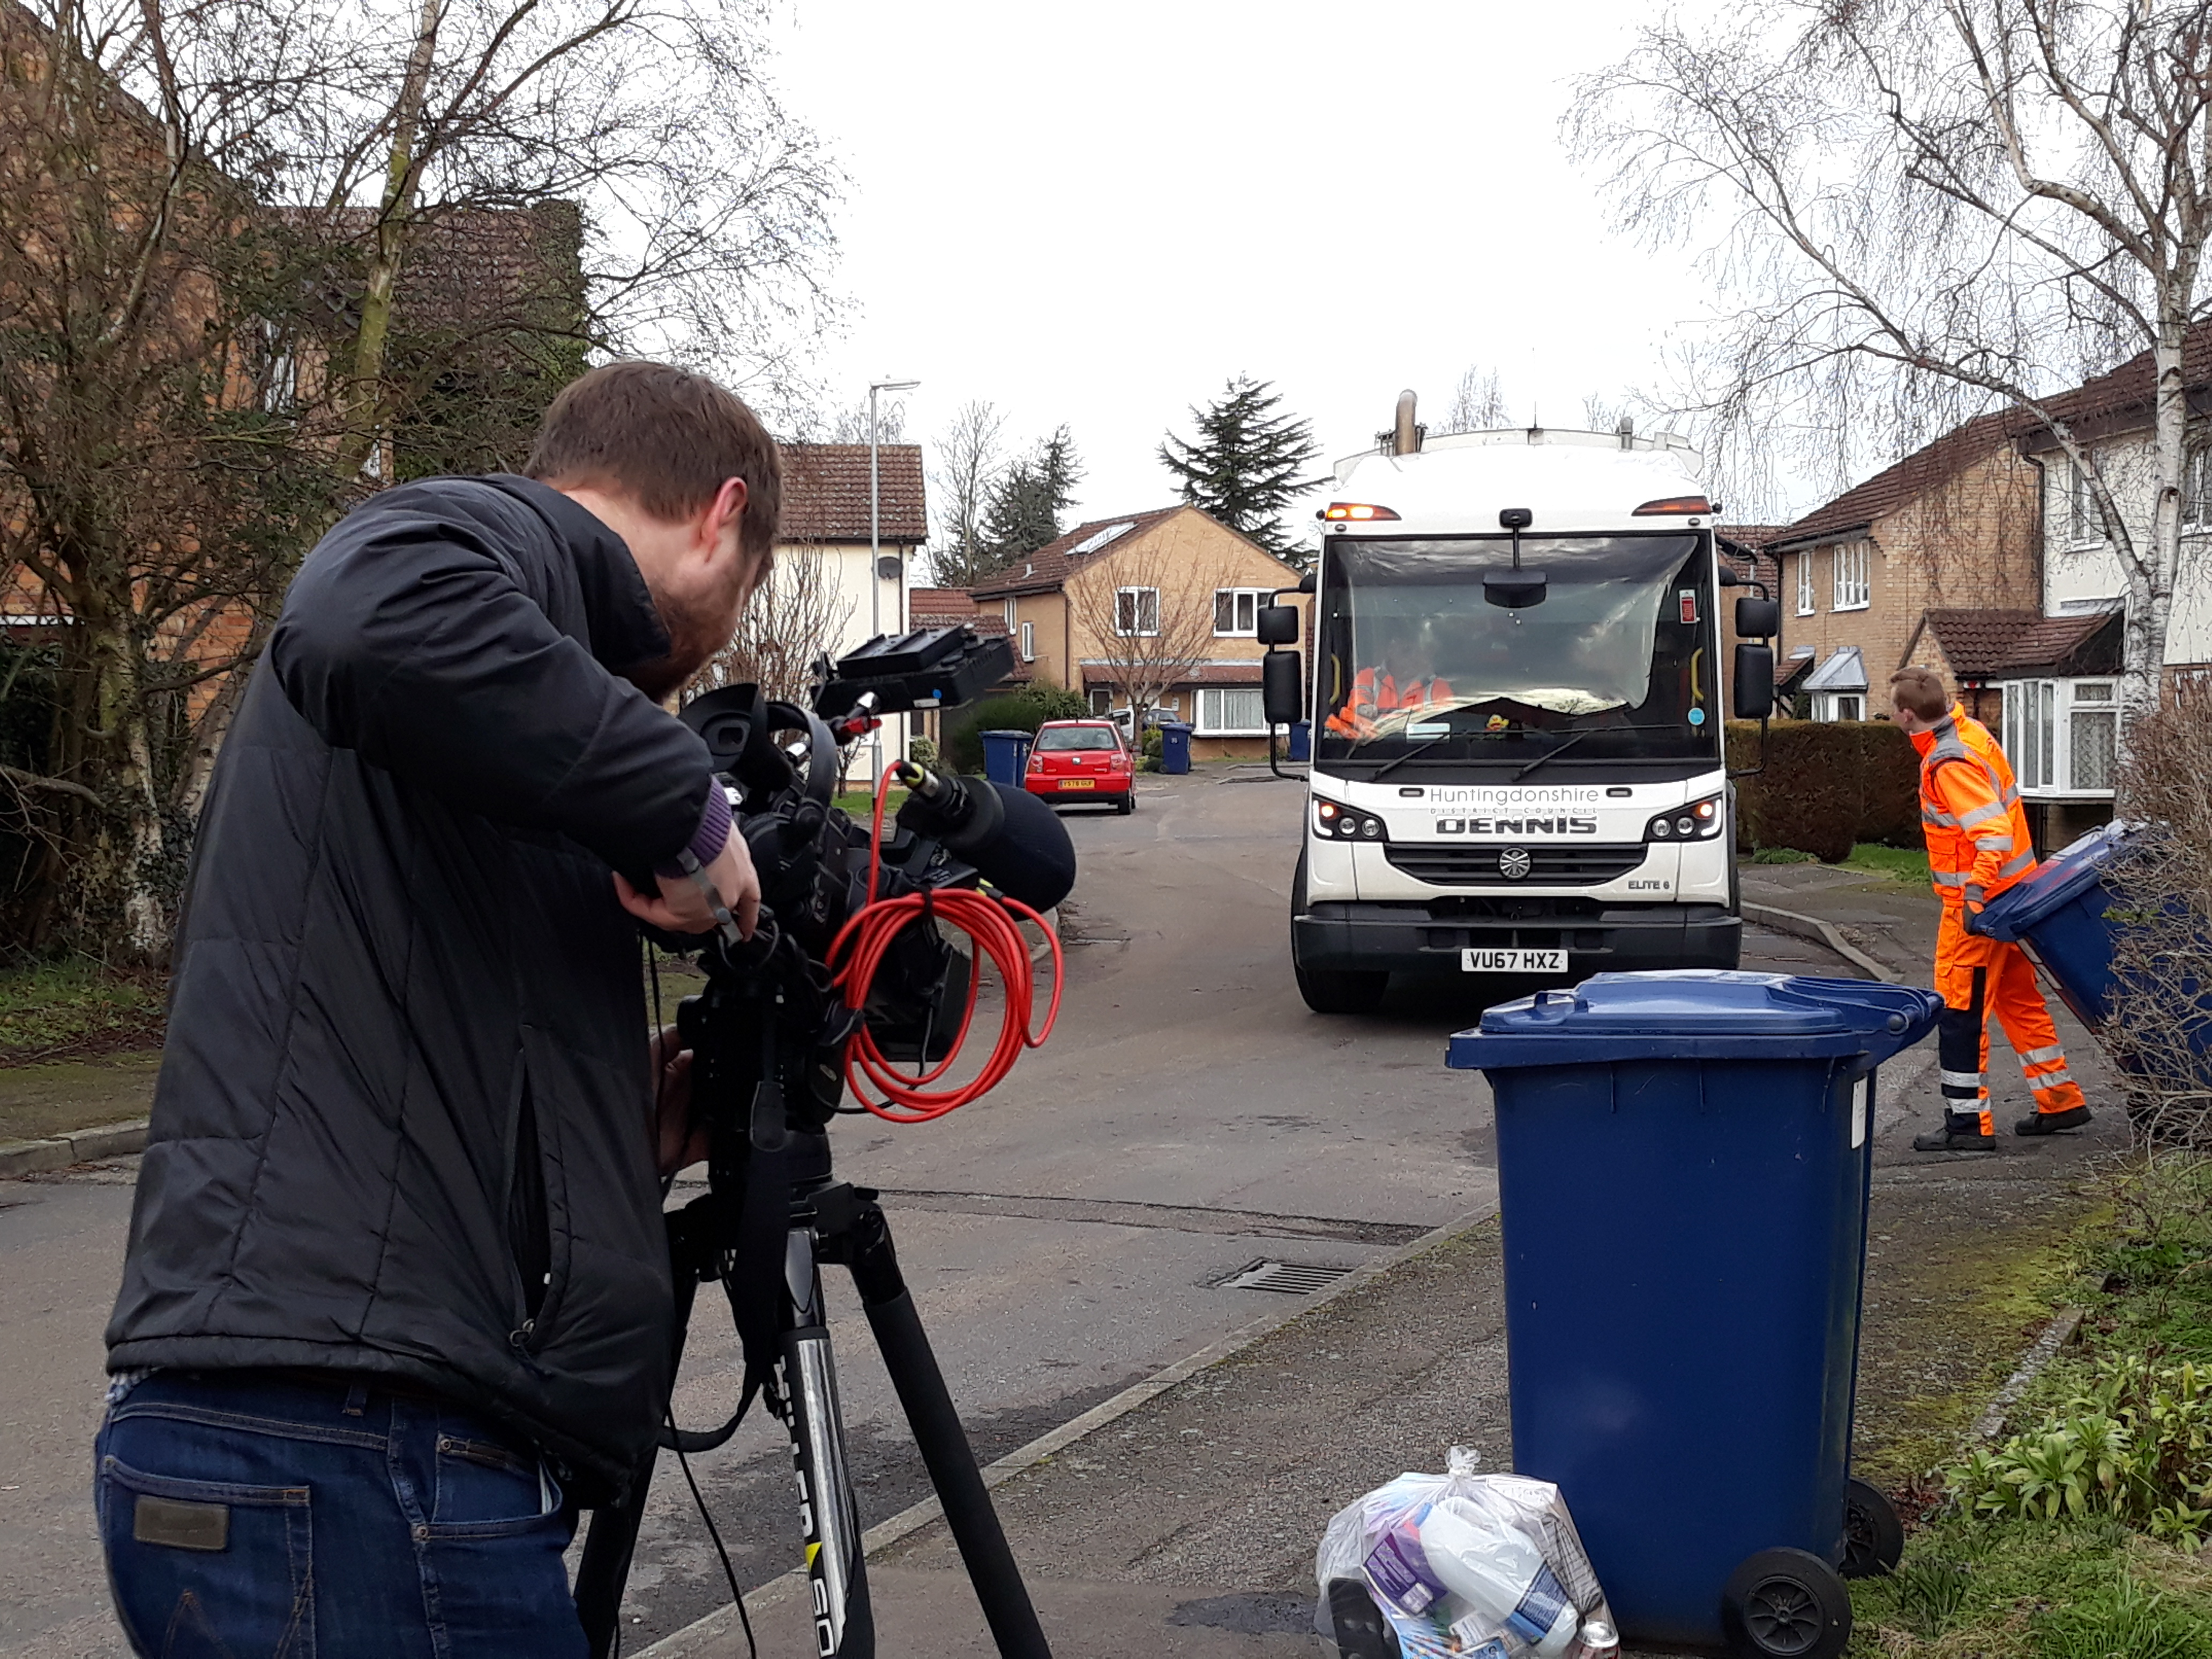 Image of bin lorry taking recycling